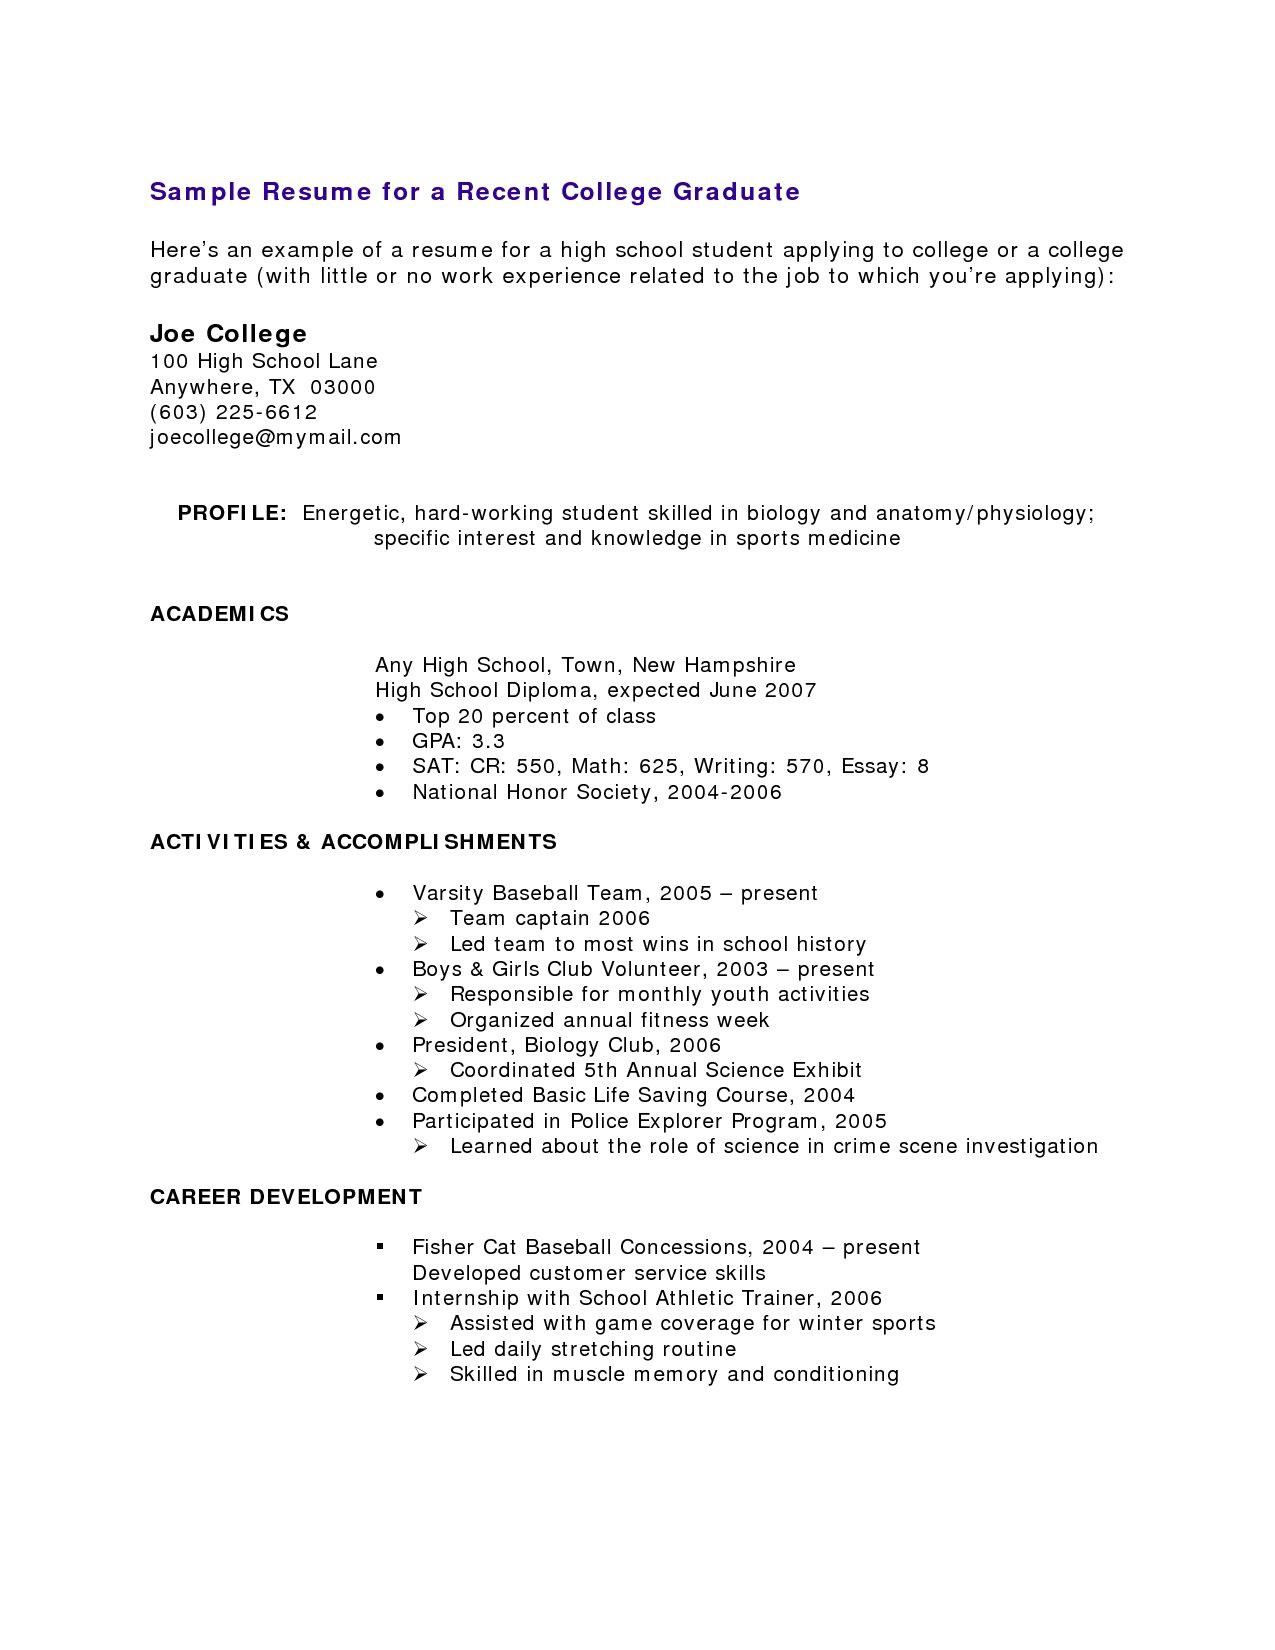 Fax Resume Template Cover Sheet Cipanewsletter Letter Statement